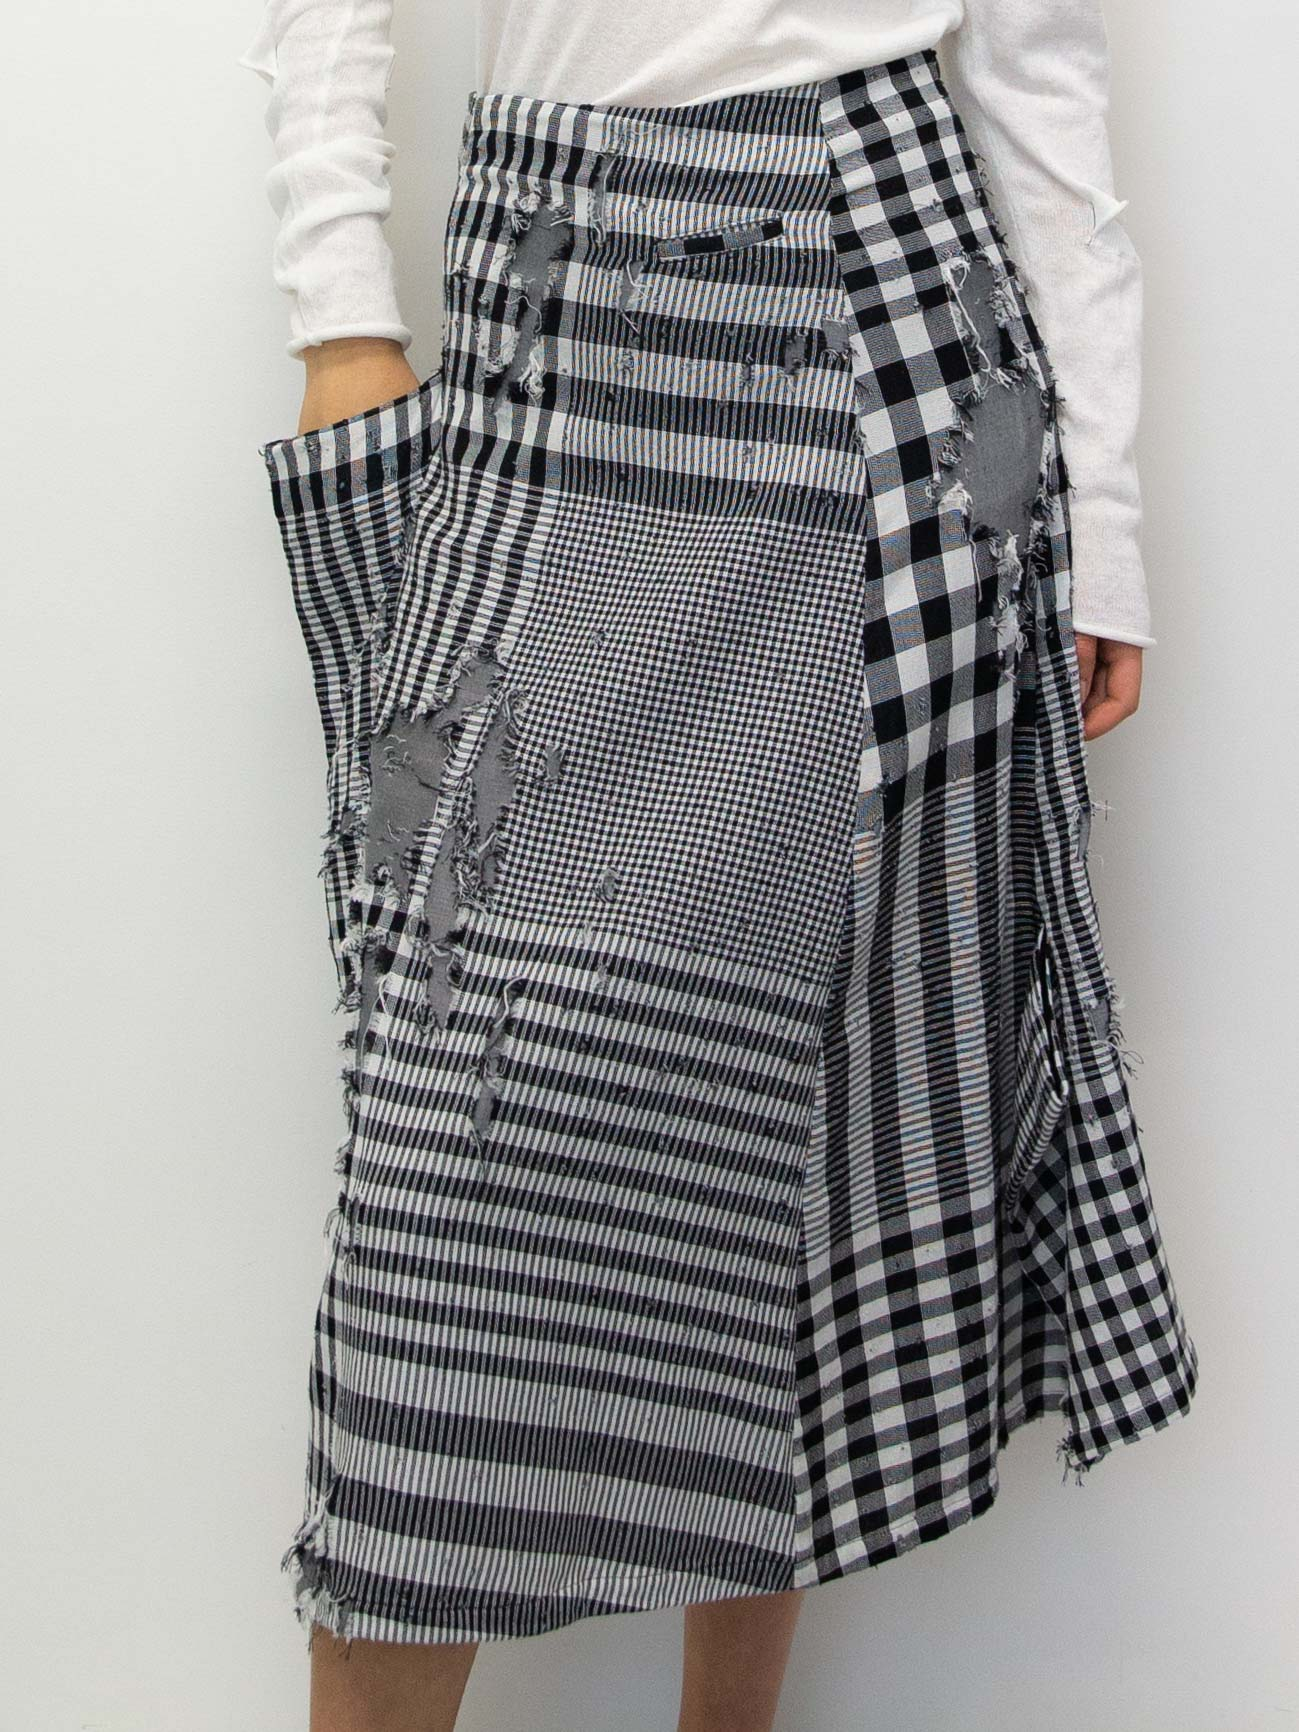 Y's Double Cloth Distressed Gingham Skirt